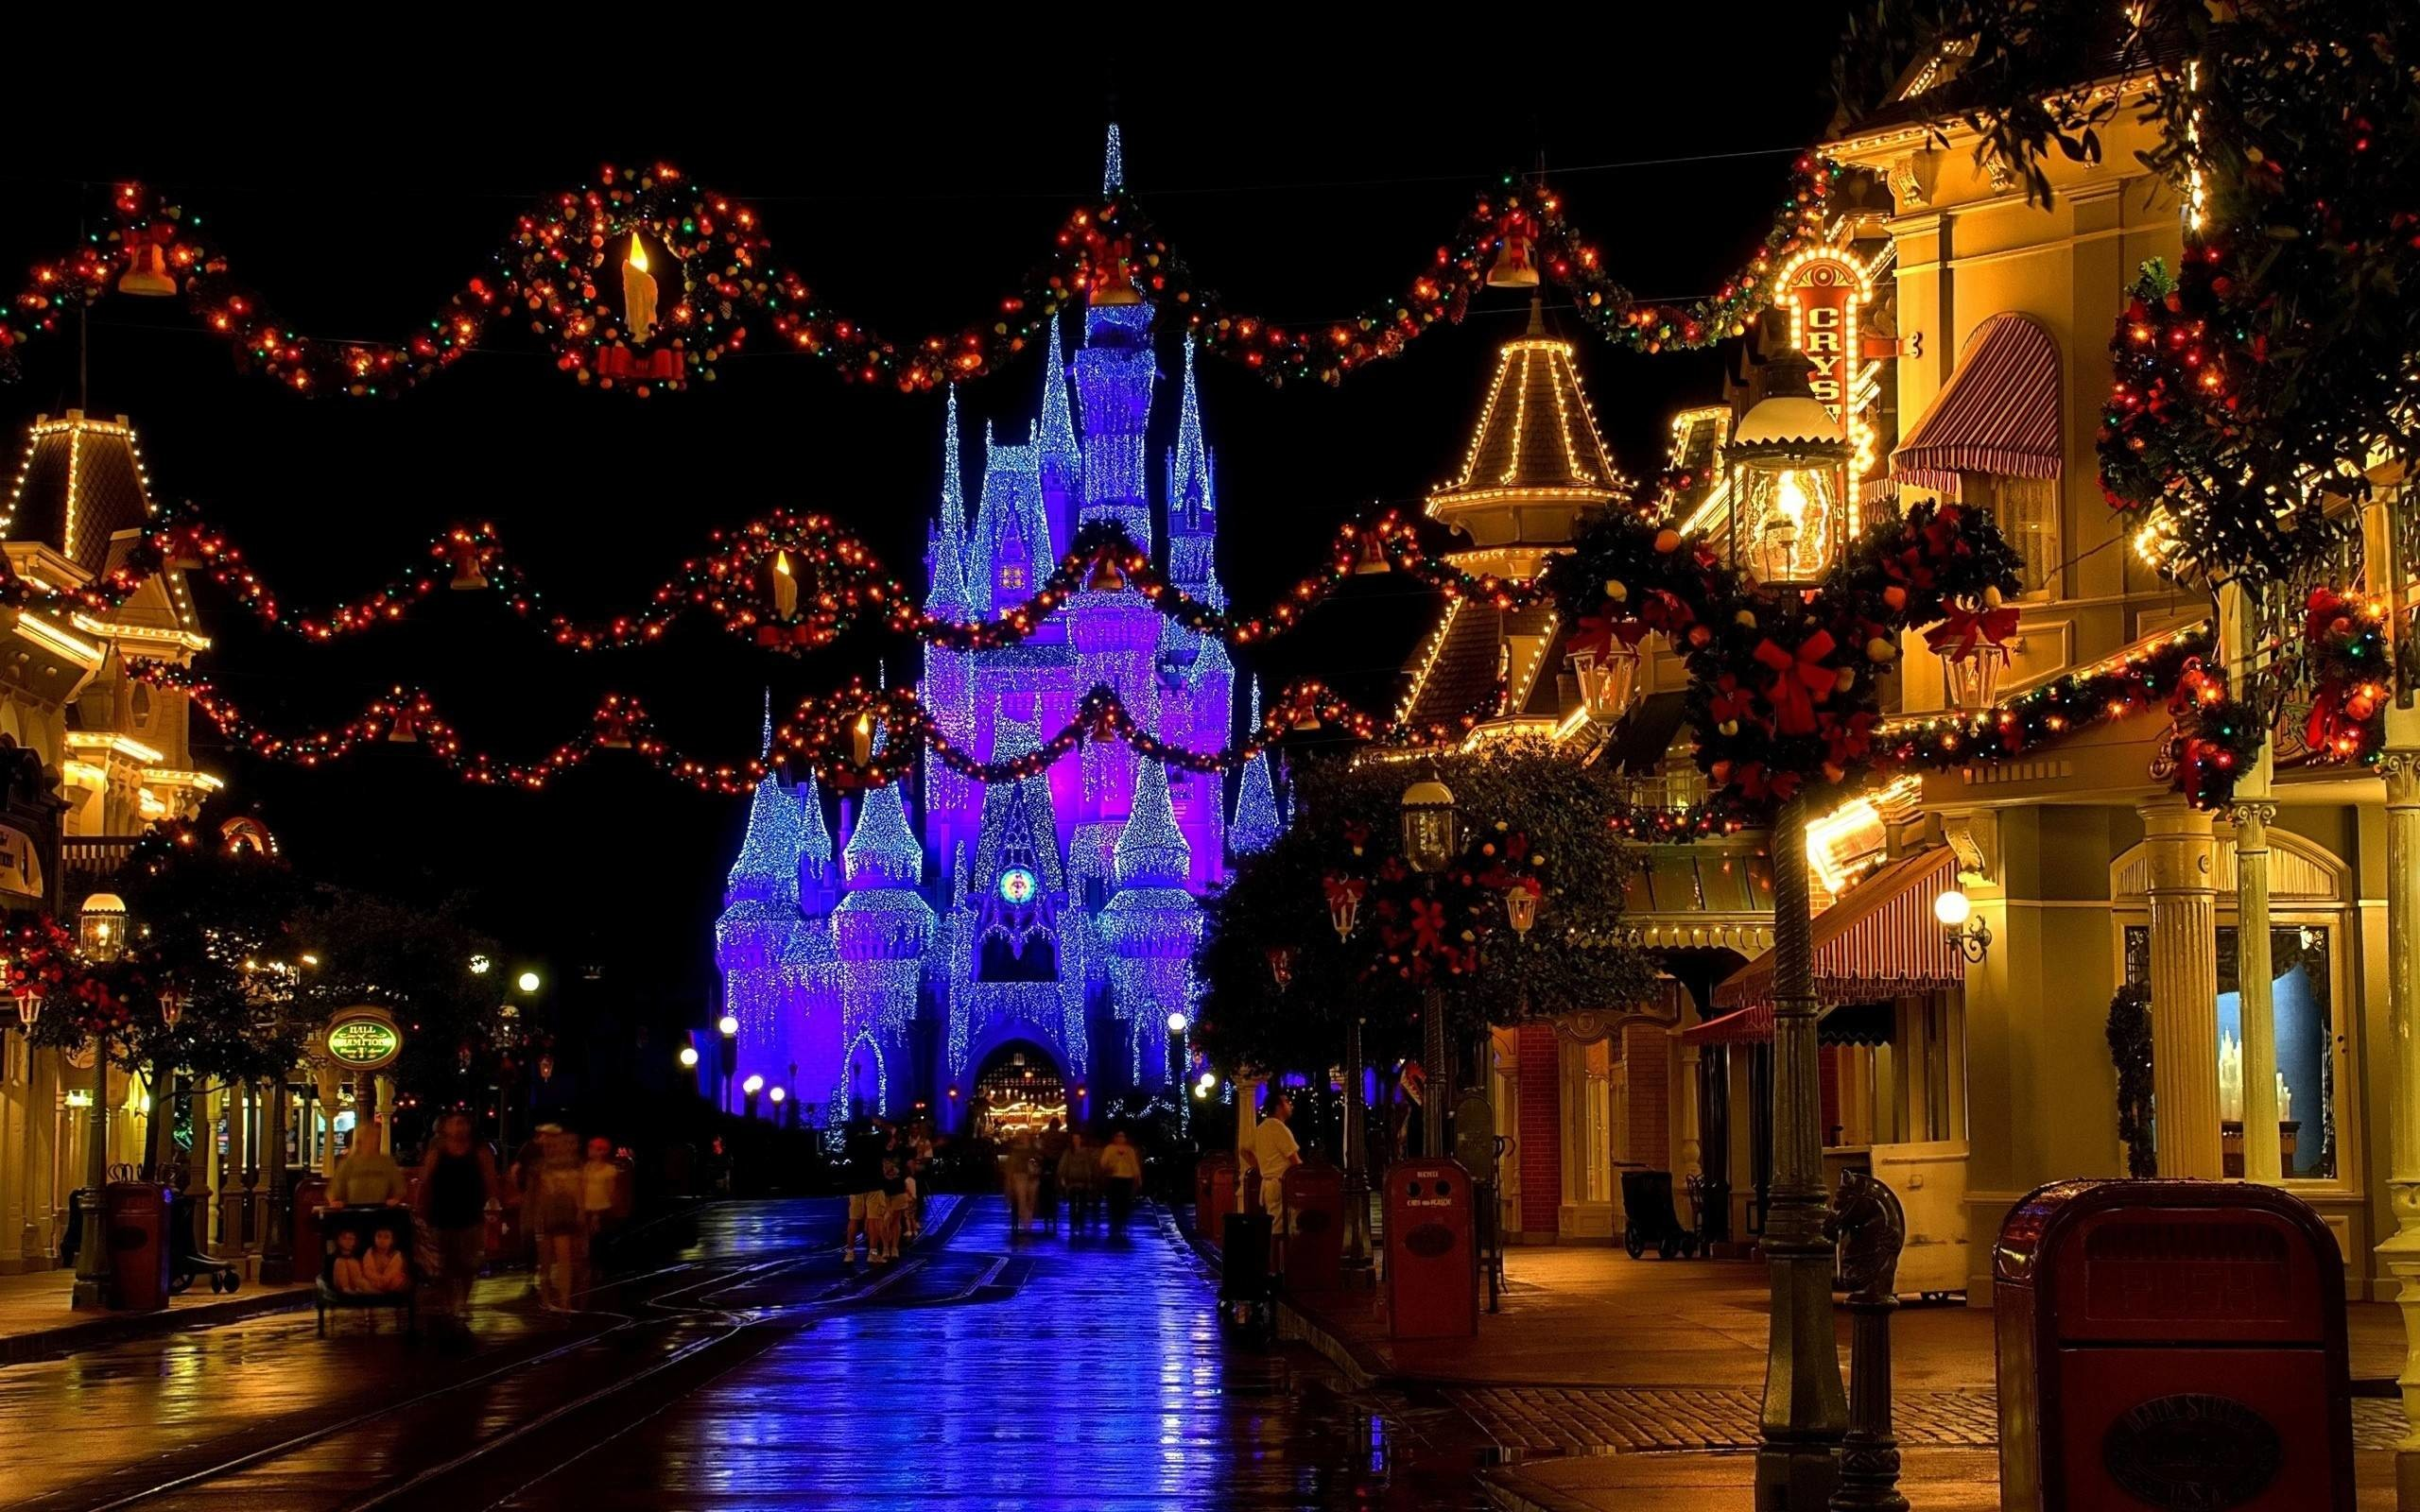 1920x1080 Disney Desktop Christmas Wallpaper